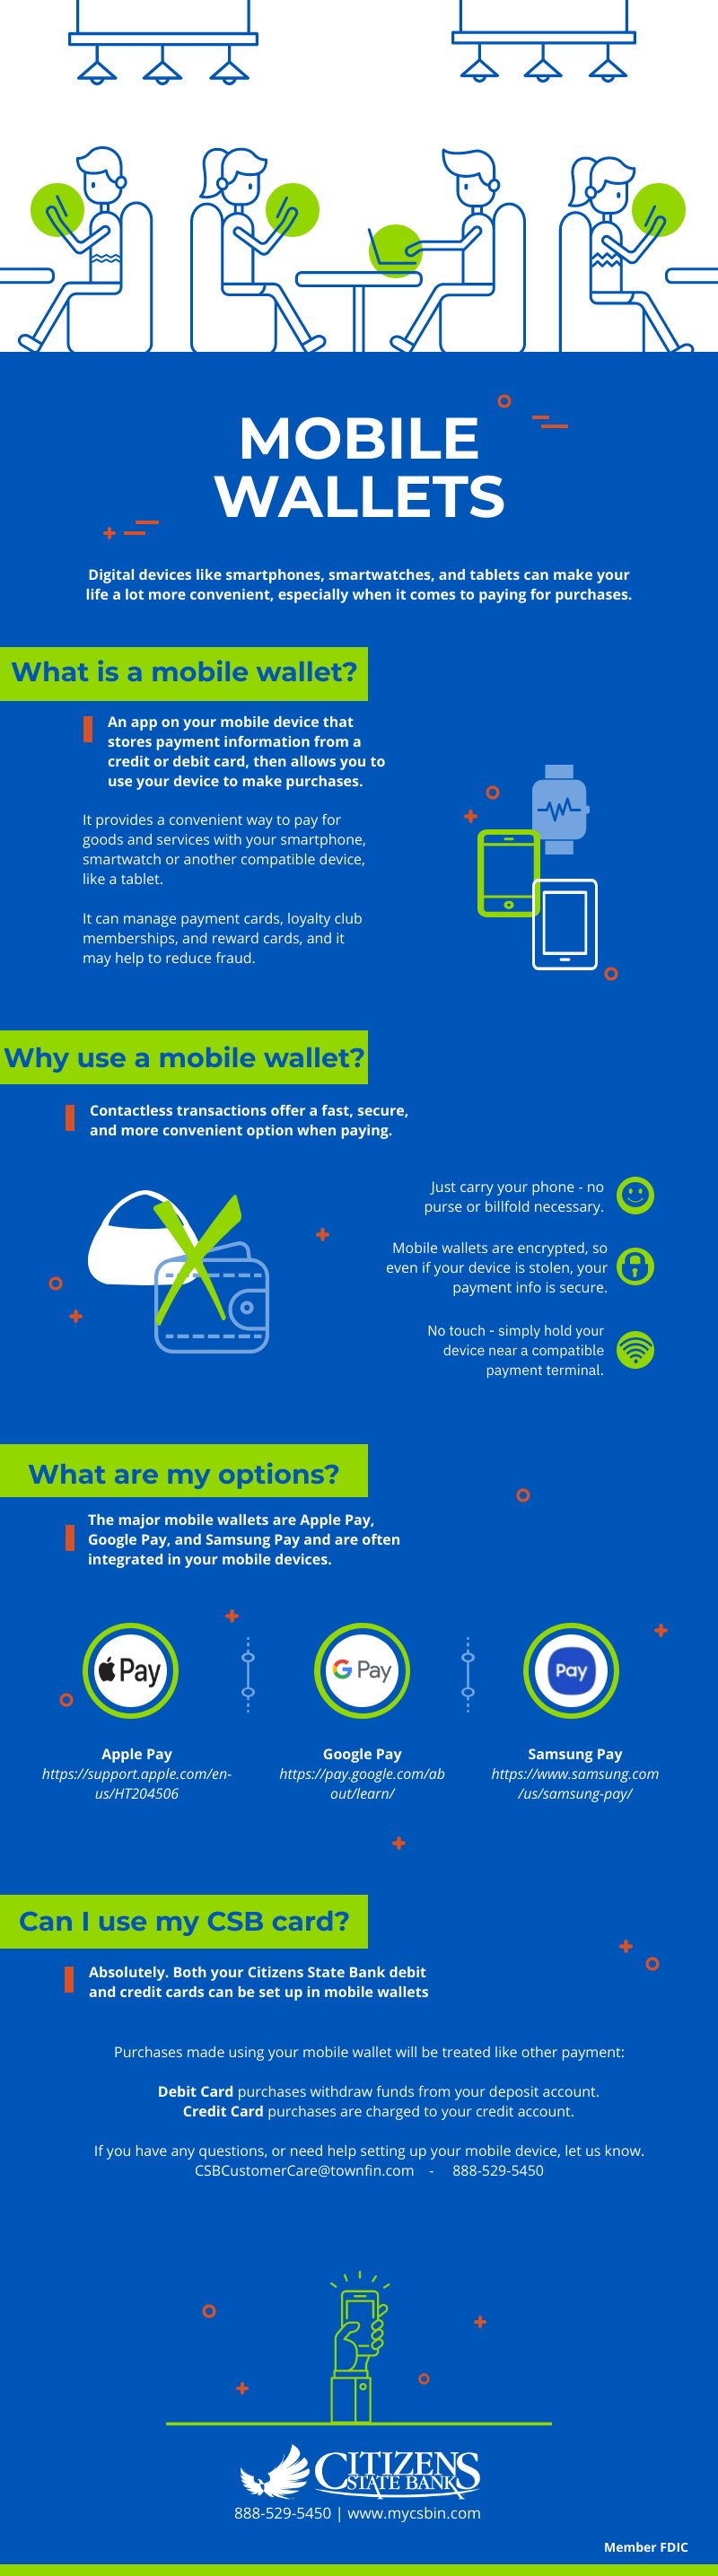 Mobile Wallets Infographic from Citizens State Bank (Indiana